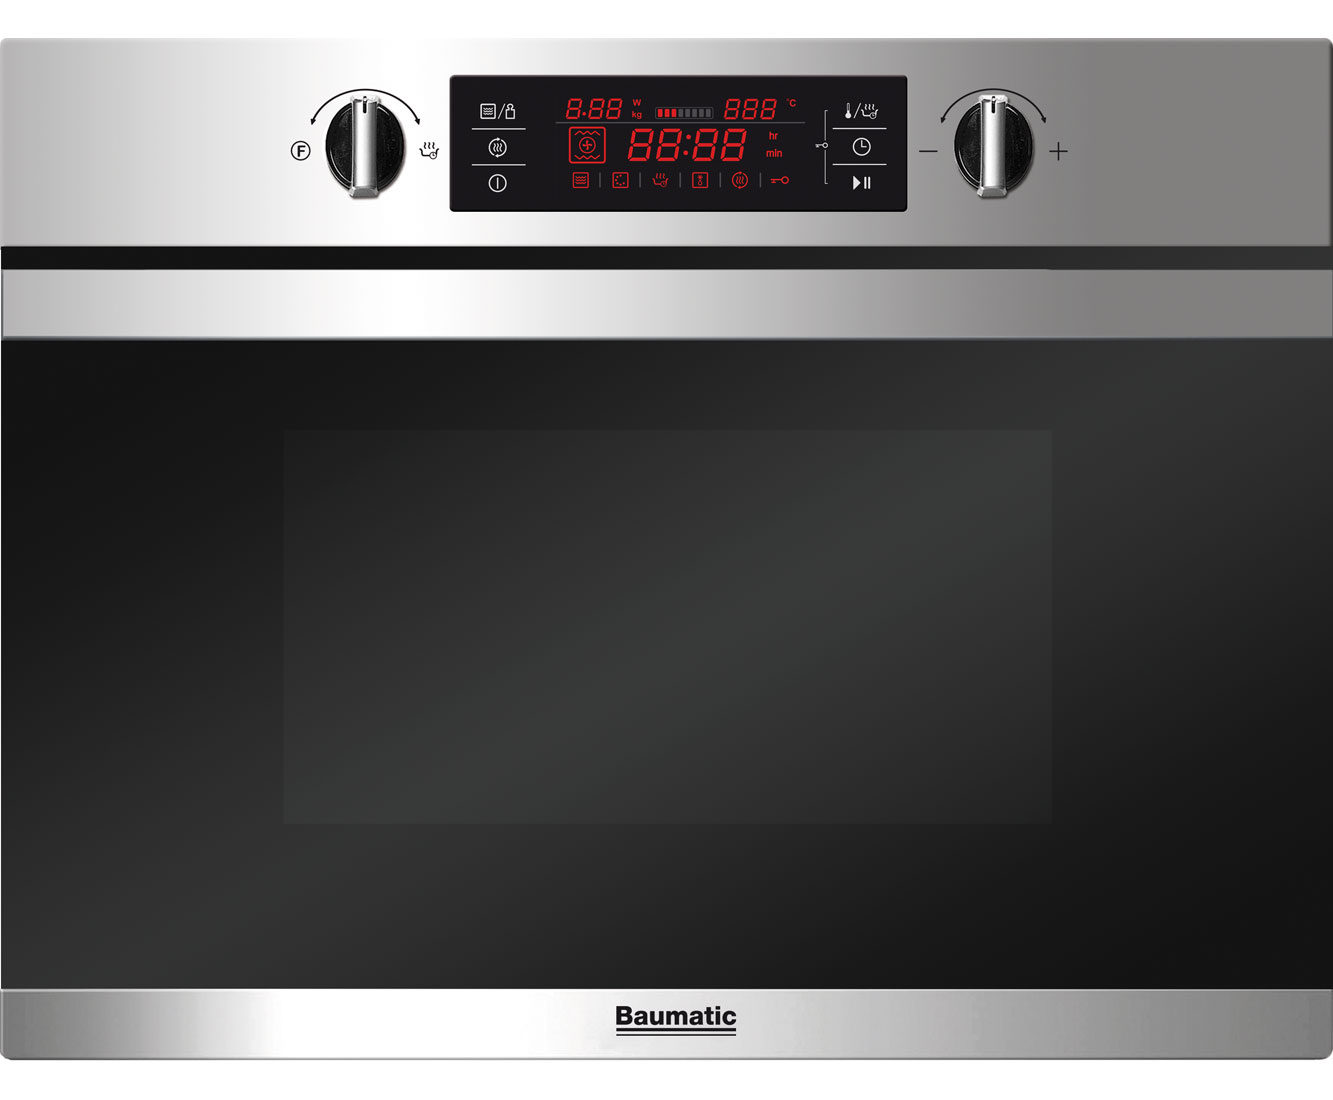 Baumatic BMC450SS Integrated Microwave Oven in Stainless Steel